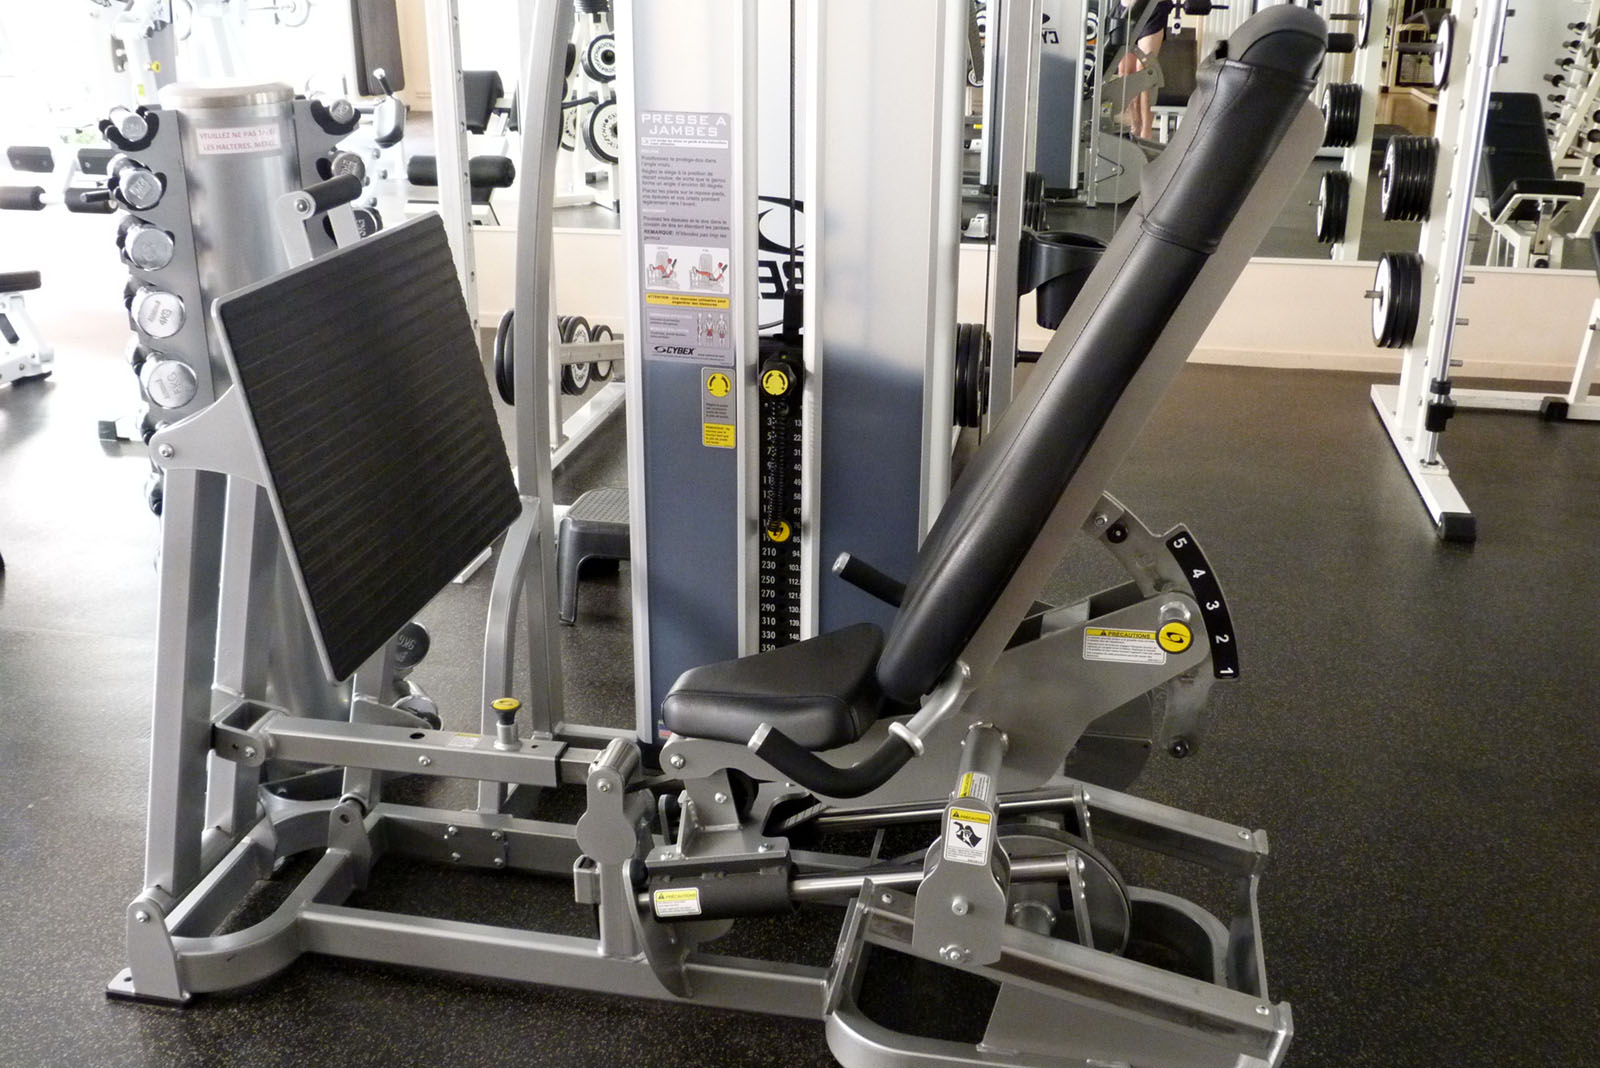 salle de sport bergerac leg press eagle cybex 1